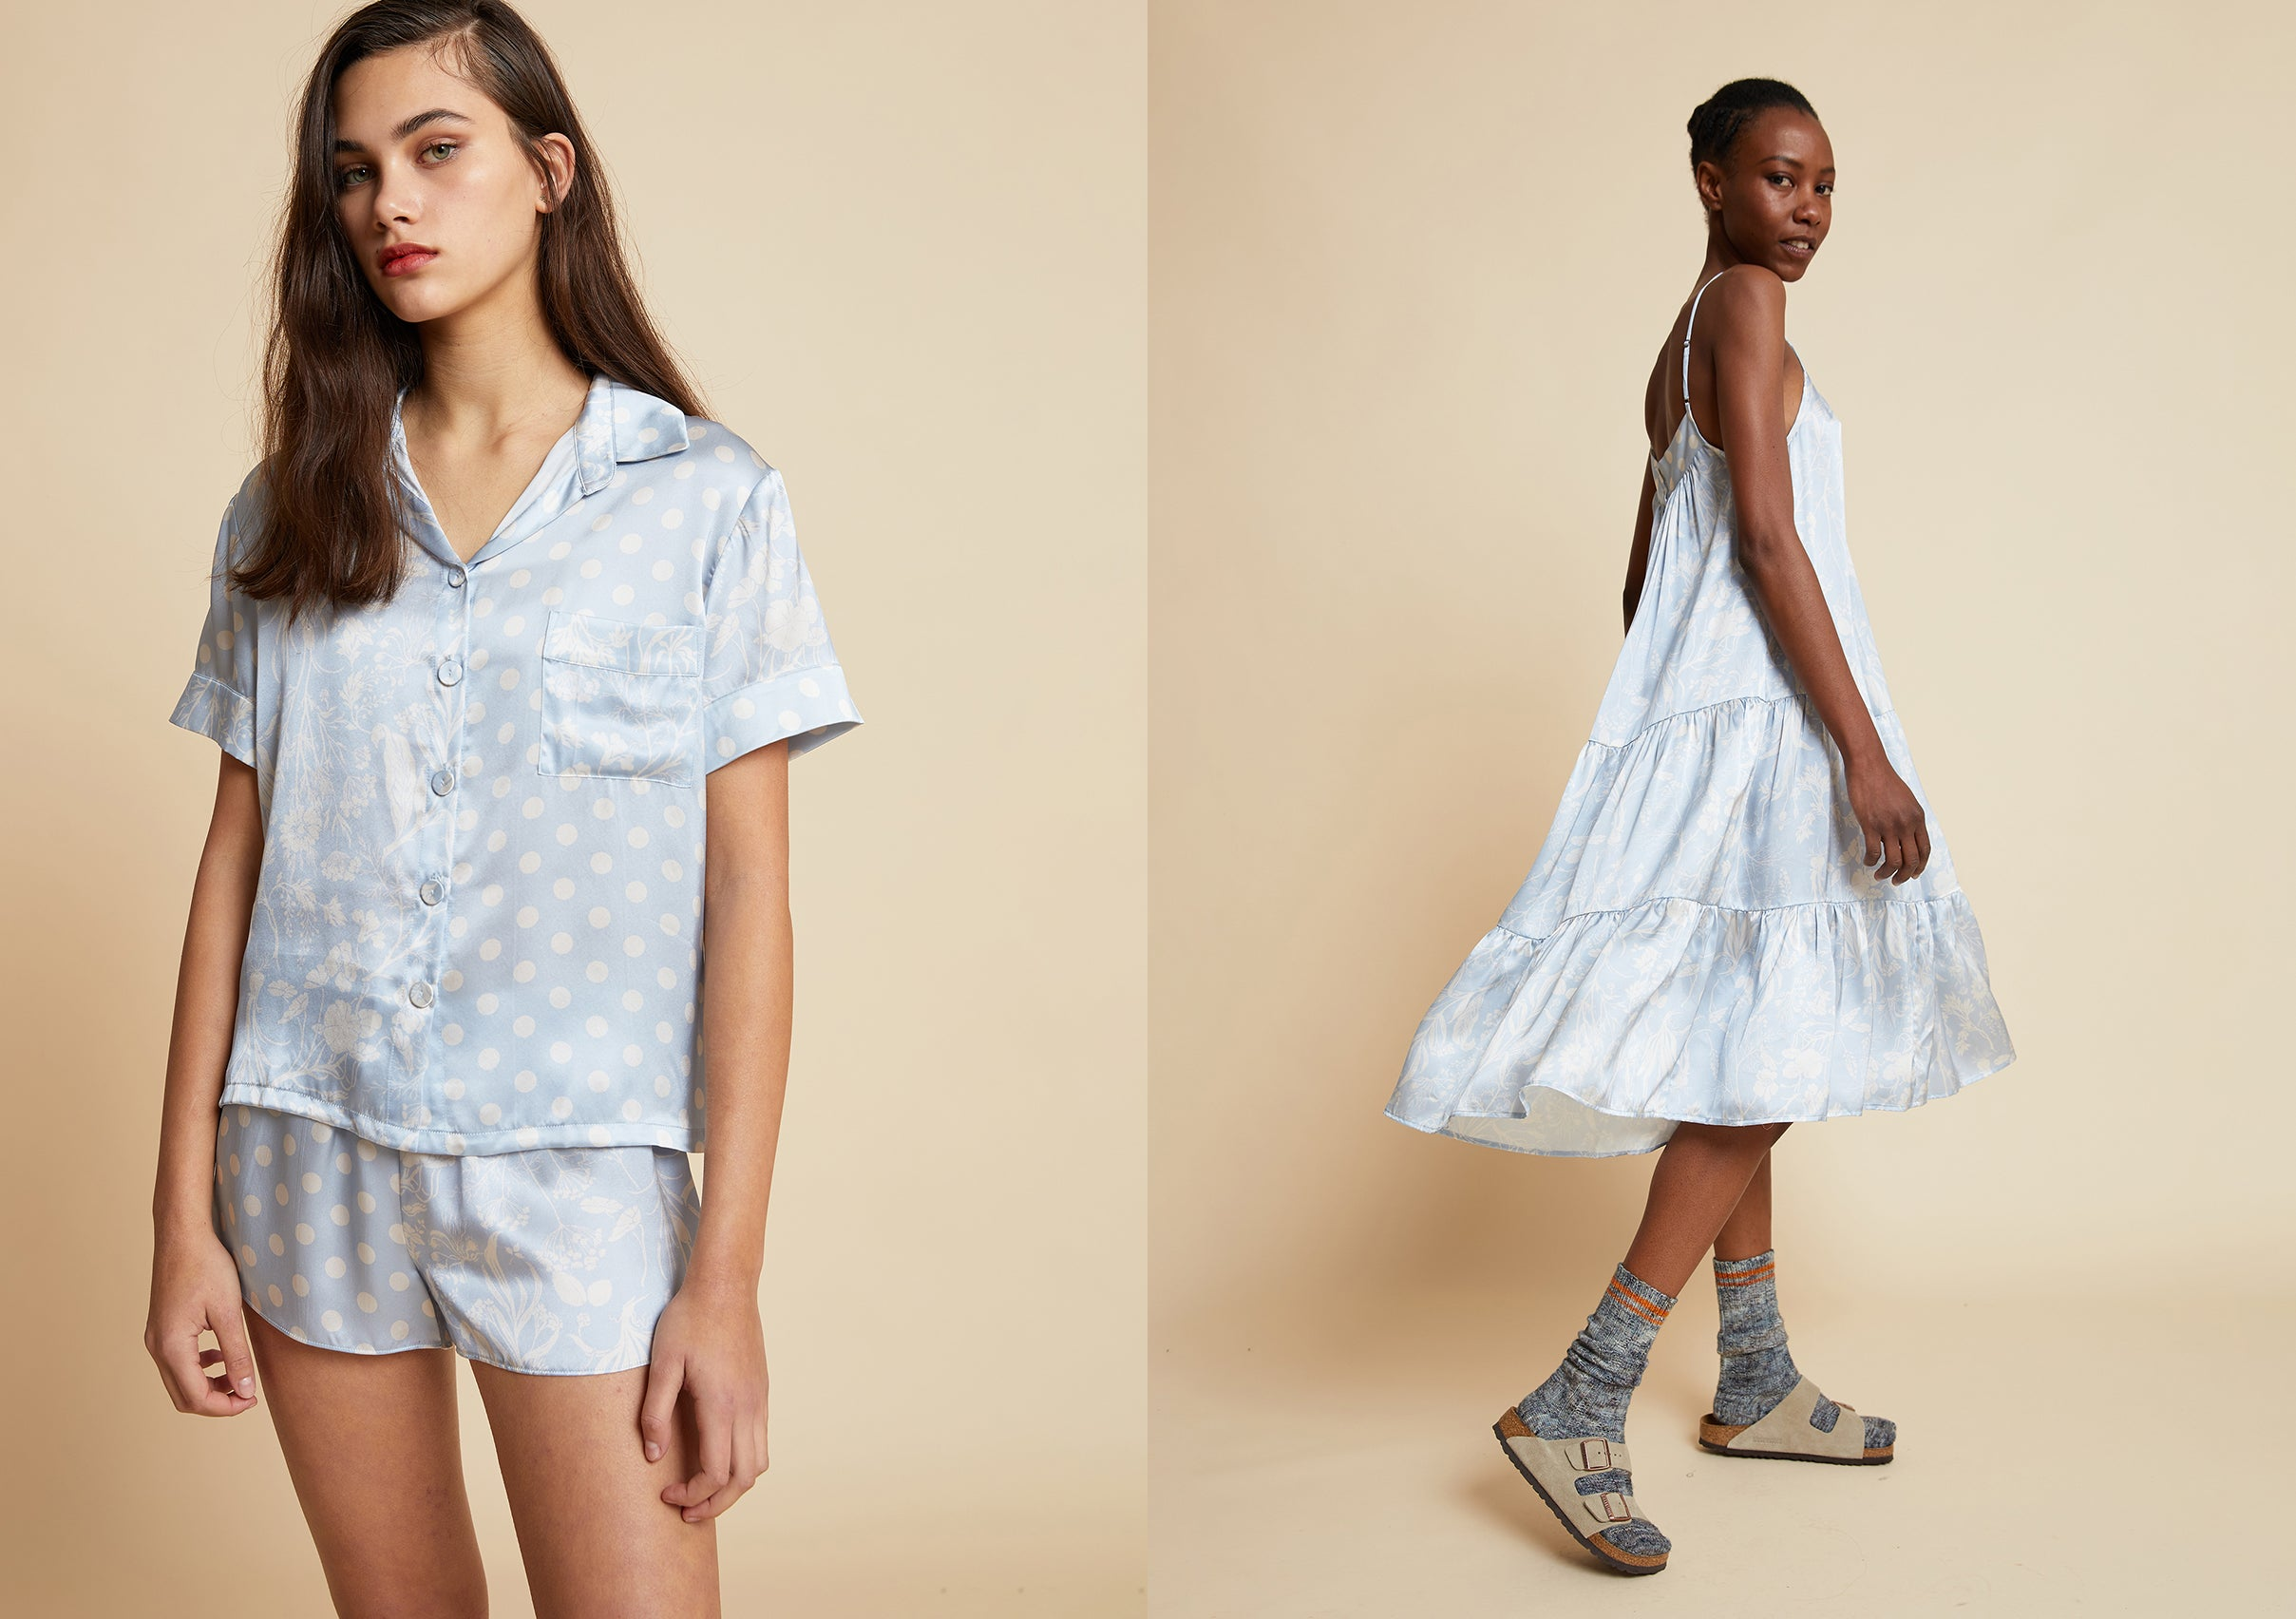 Papinelle x Karen Walker Spliced Ivy Boxer PJ and Tiered Nightgown